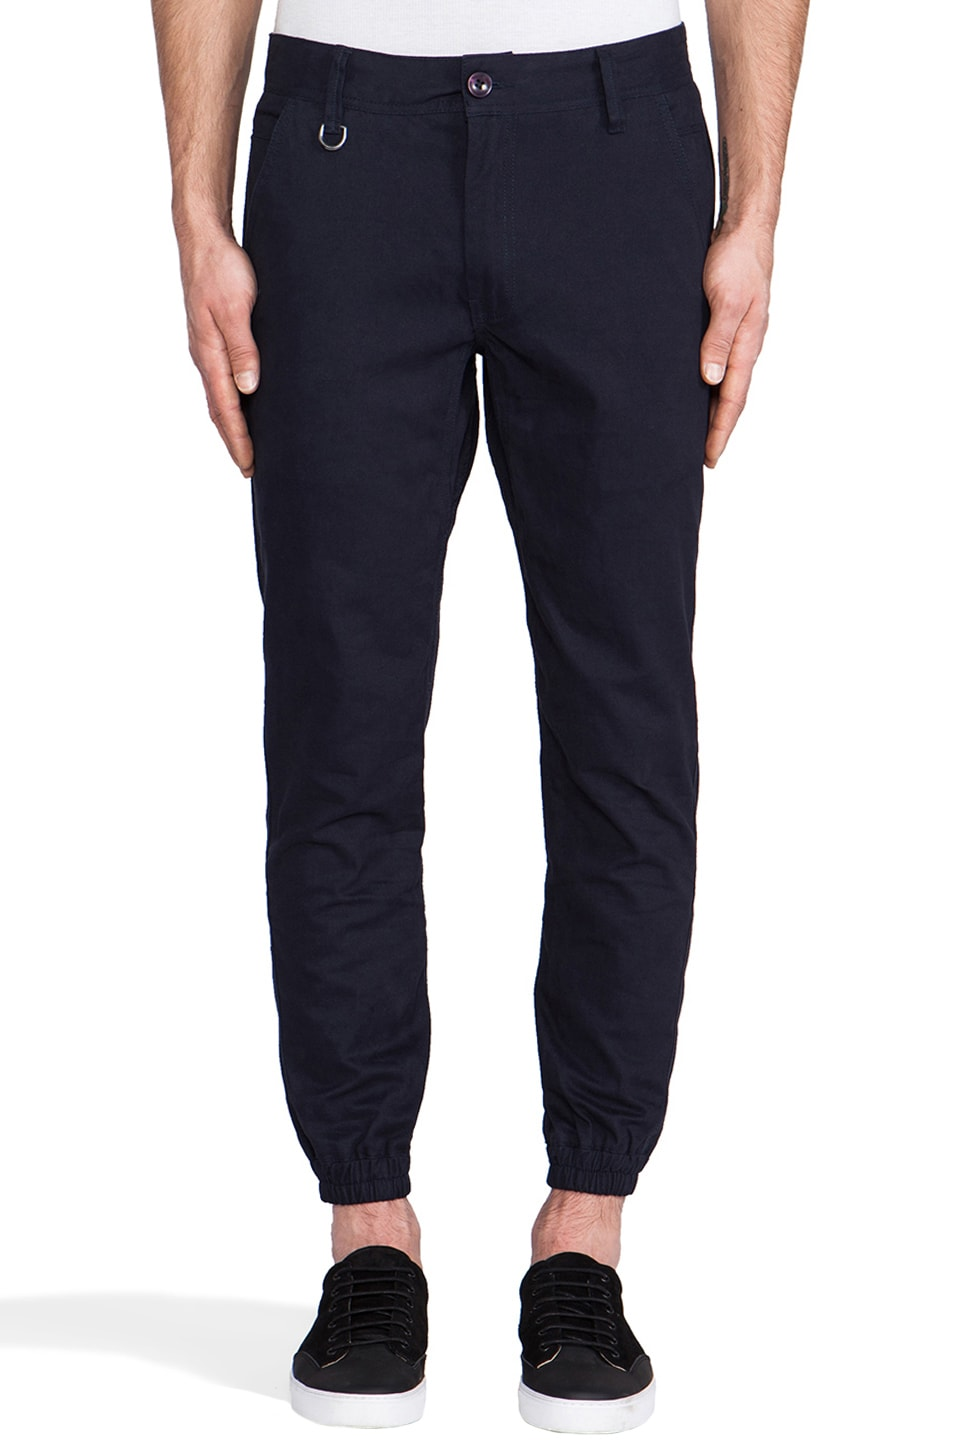 Publish Jogger in Navy